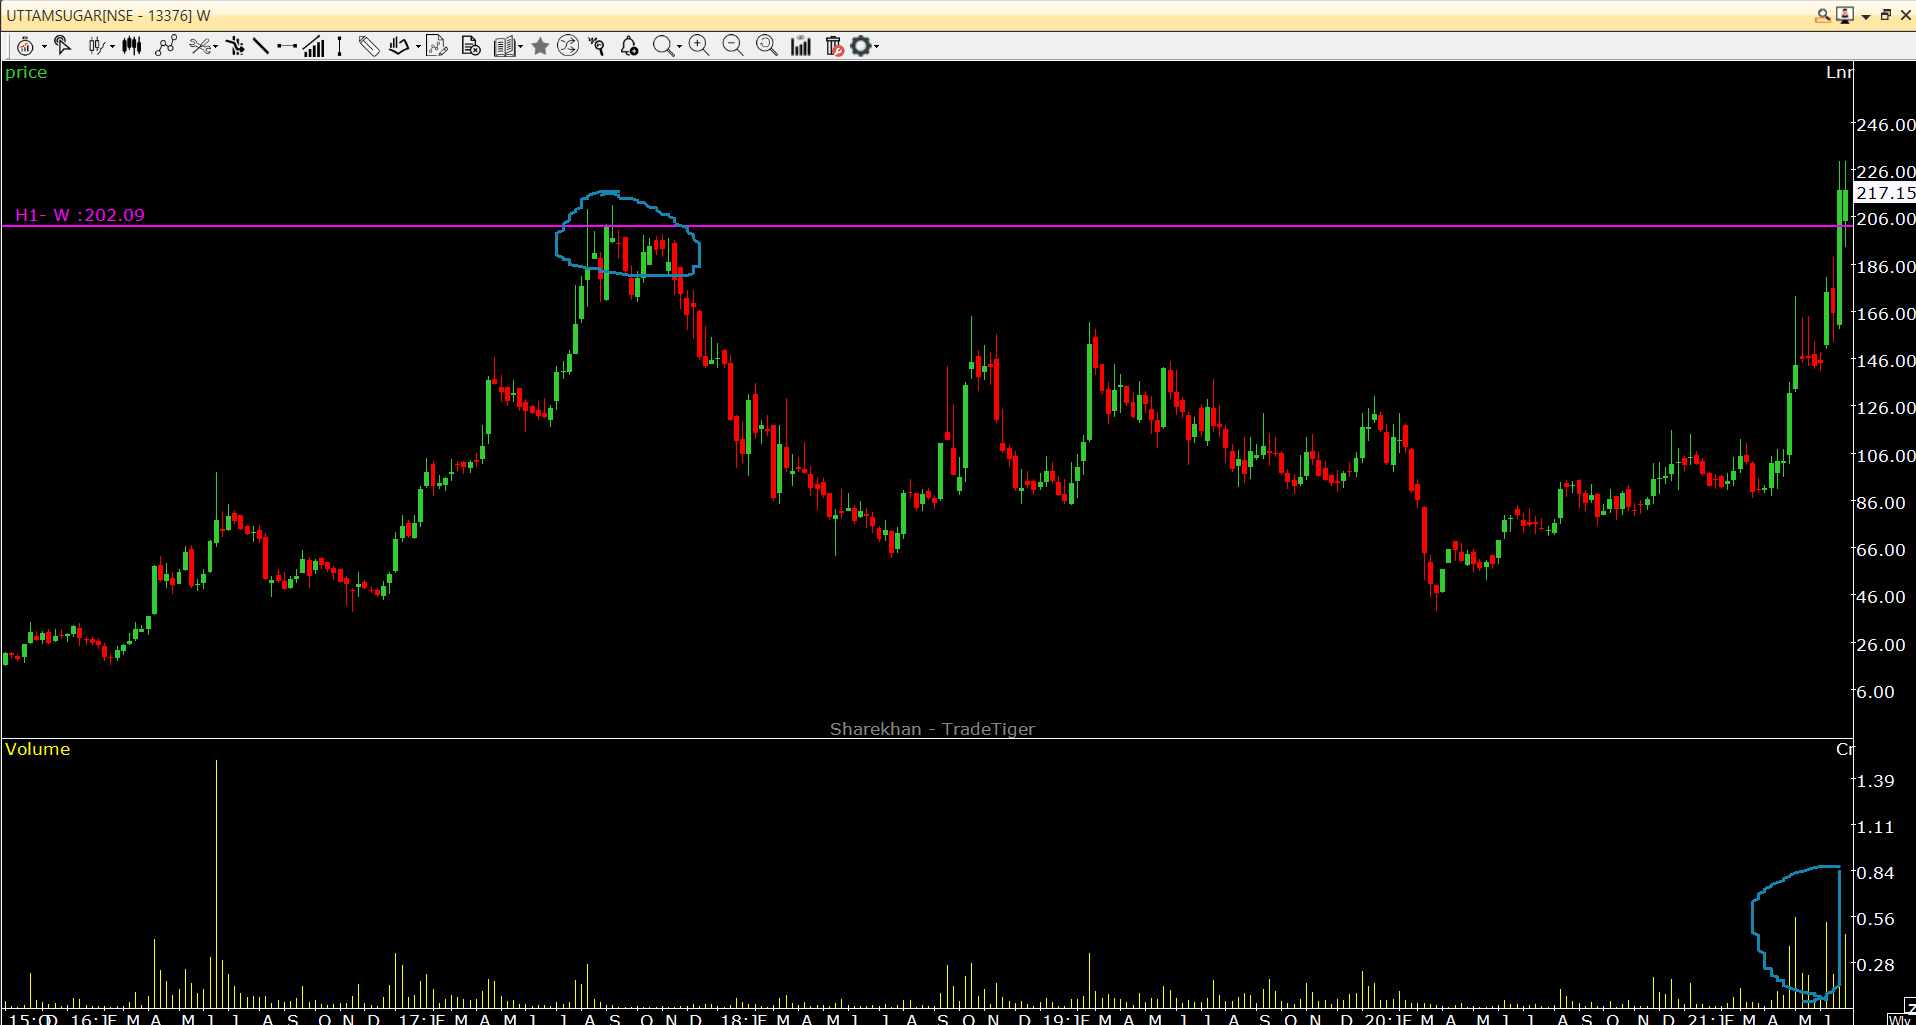 Chart Of The Week – Date 28-06-21 – Analysis For 3 To 12 Months